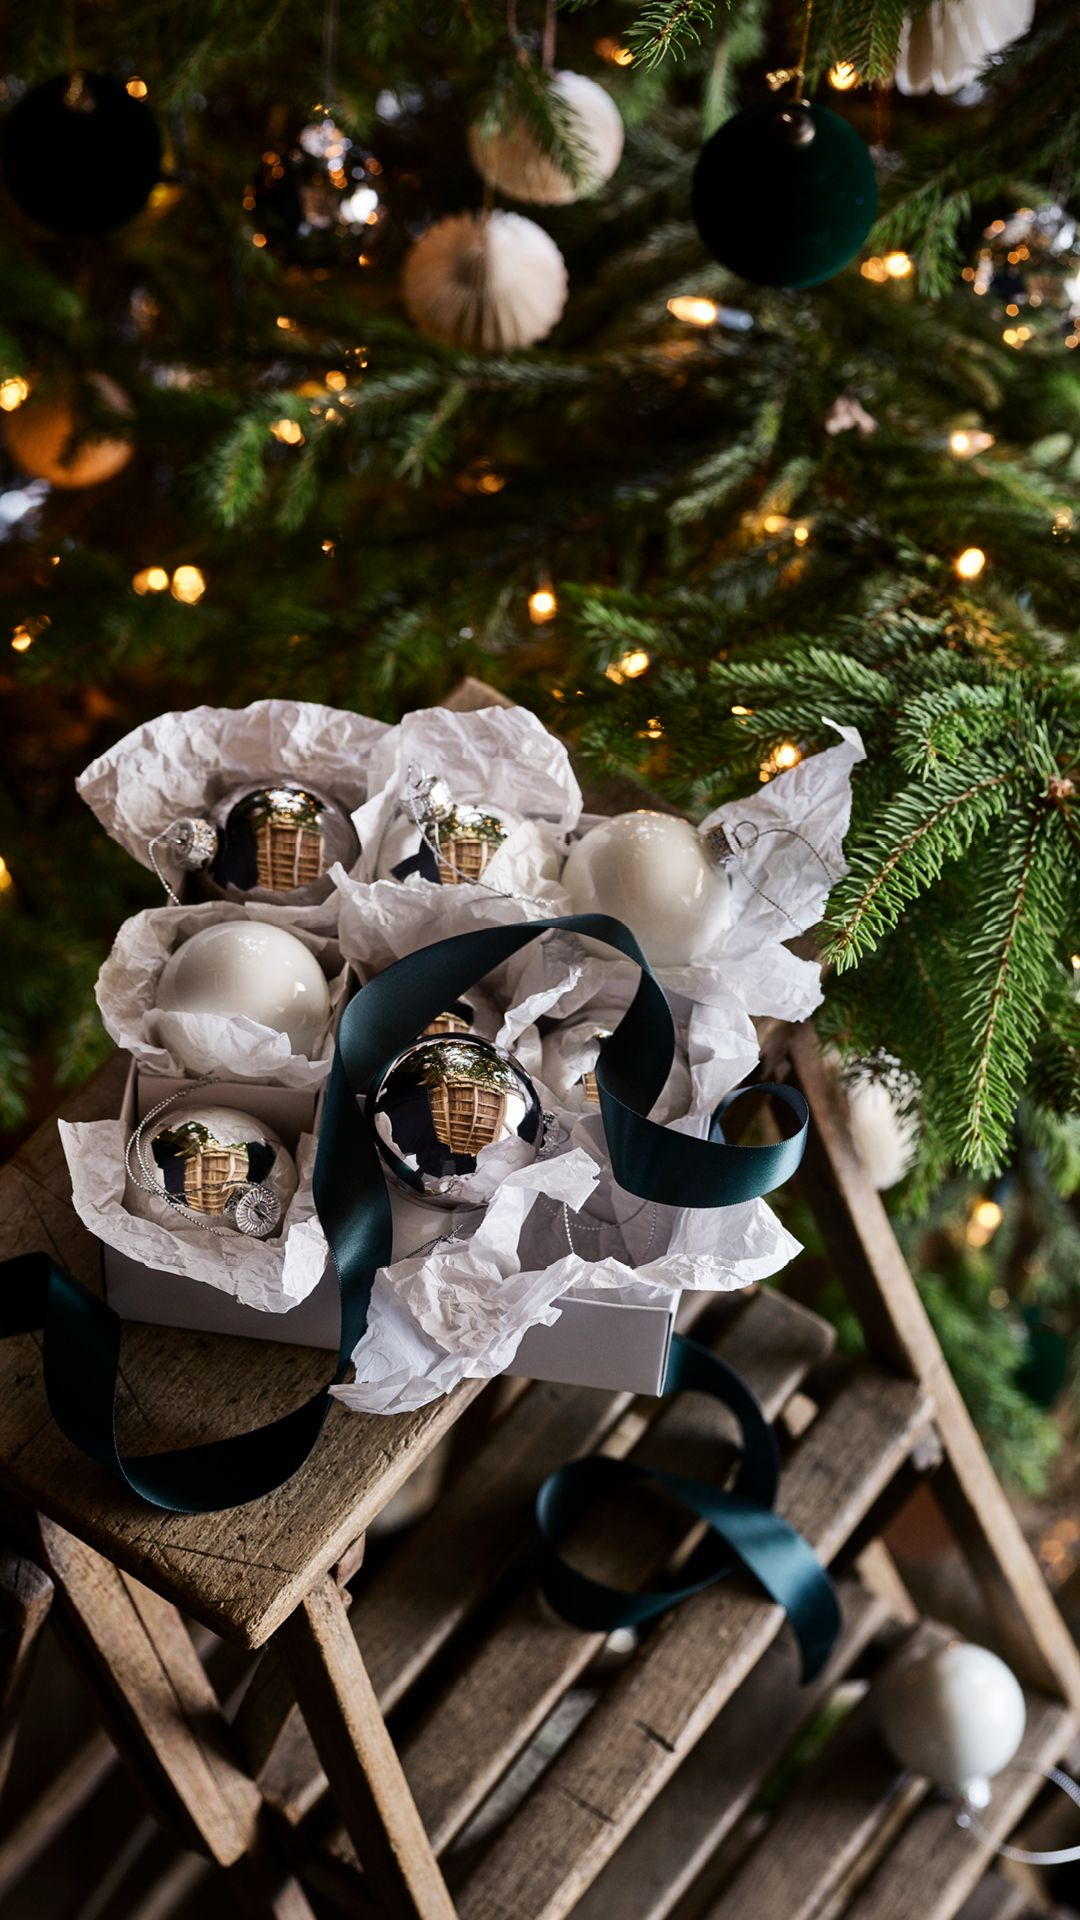 H M Home Christmas Ornaments Sparkling Decorations And Scented Candles Explore The Details That S Simple Christmas Decor Holiday Tree Christmas Decorations